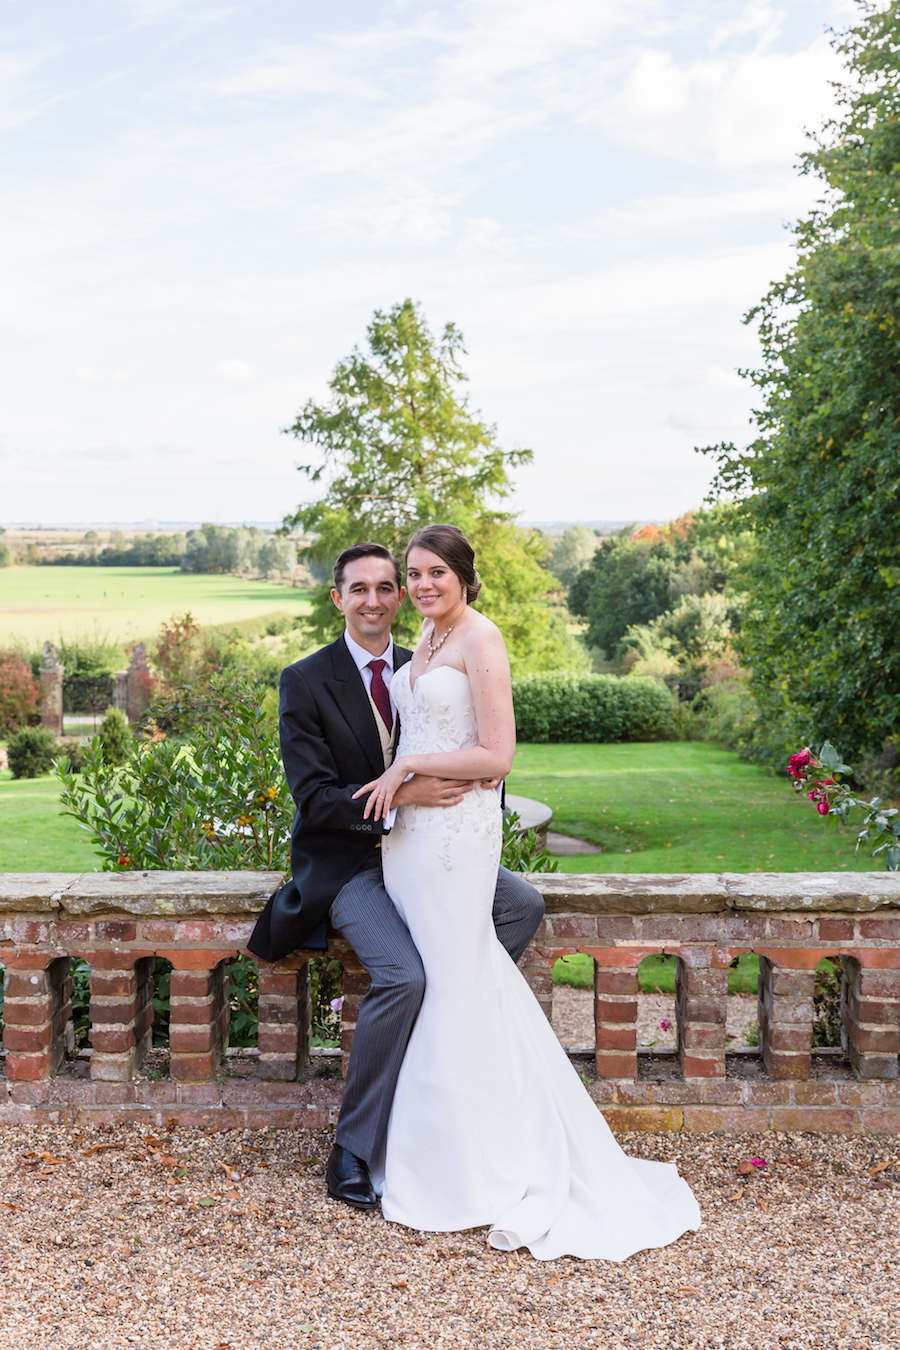 Real wedding by Ayshea Goldberg Photography at Layer Marney Tower (46)